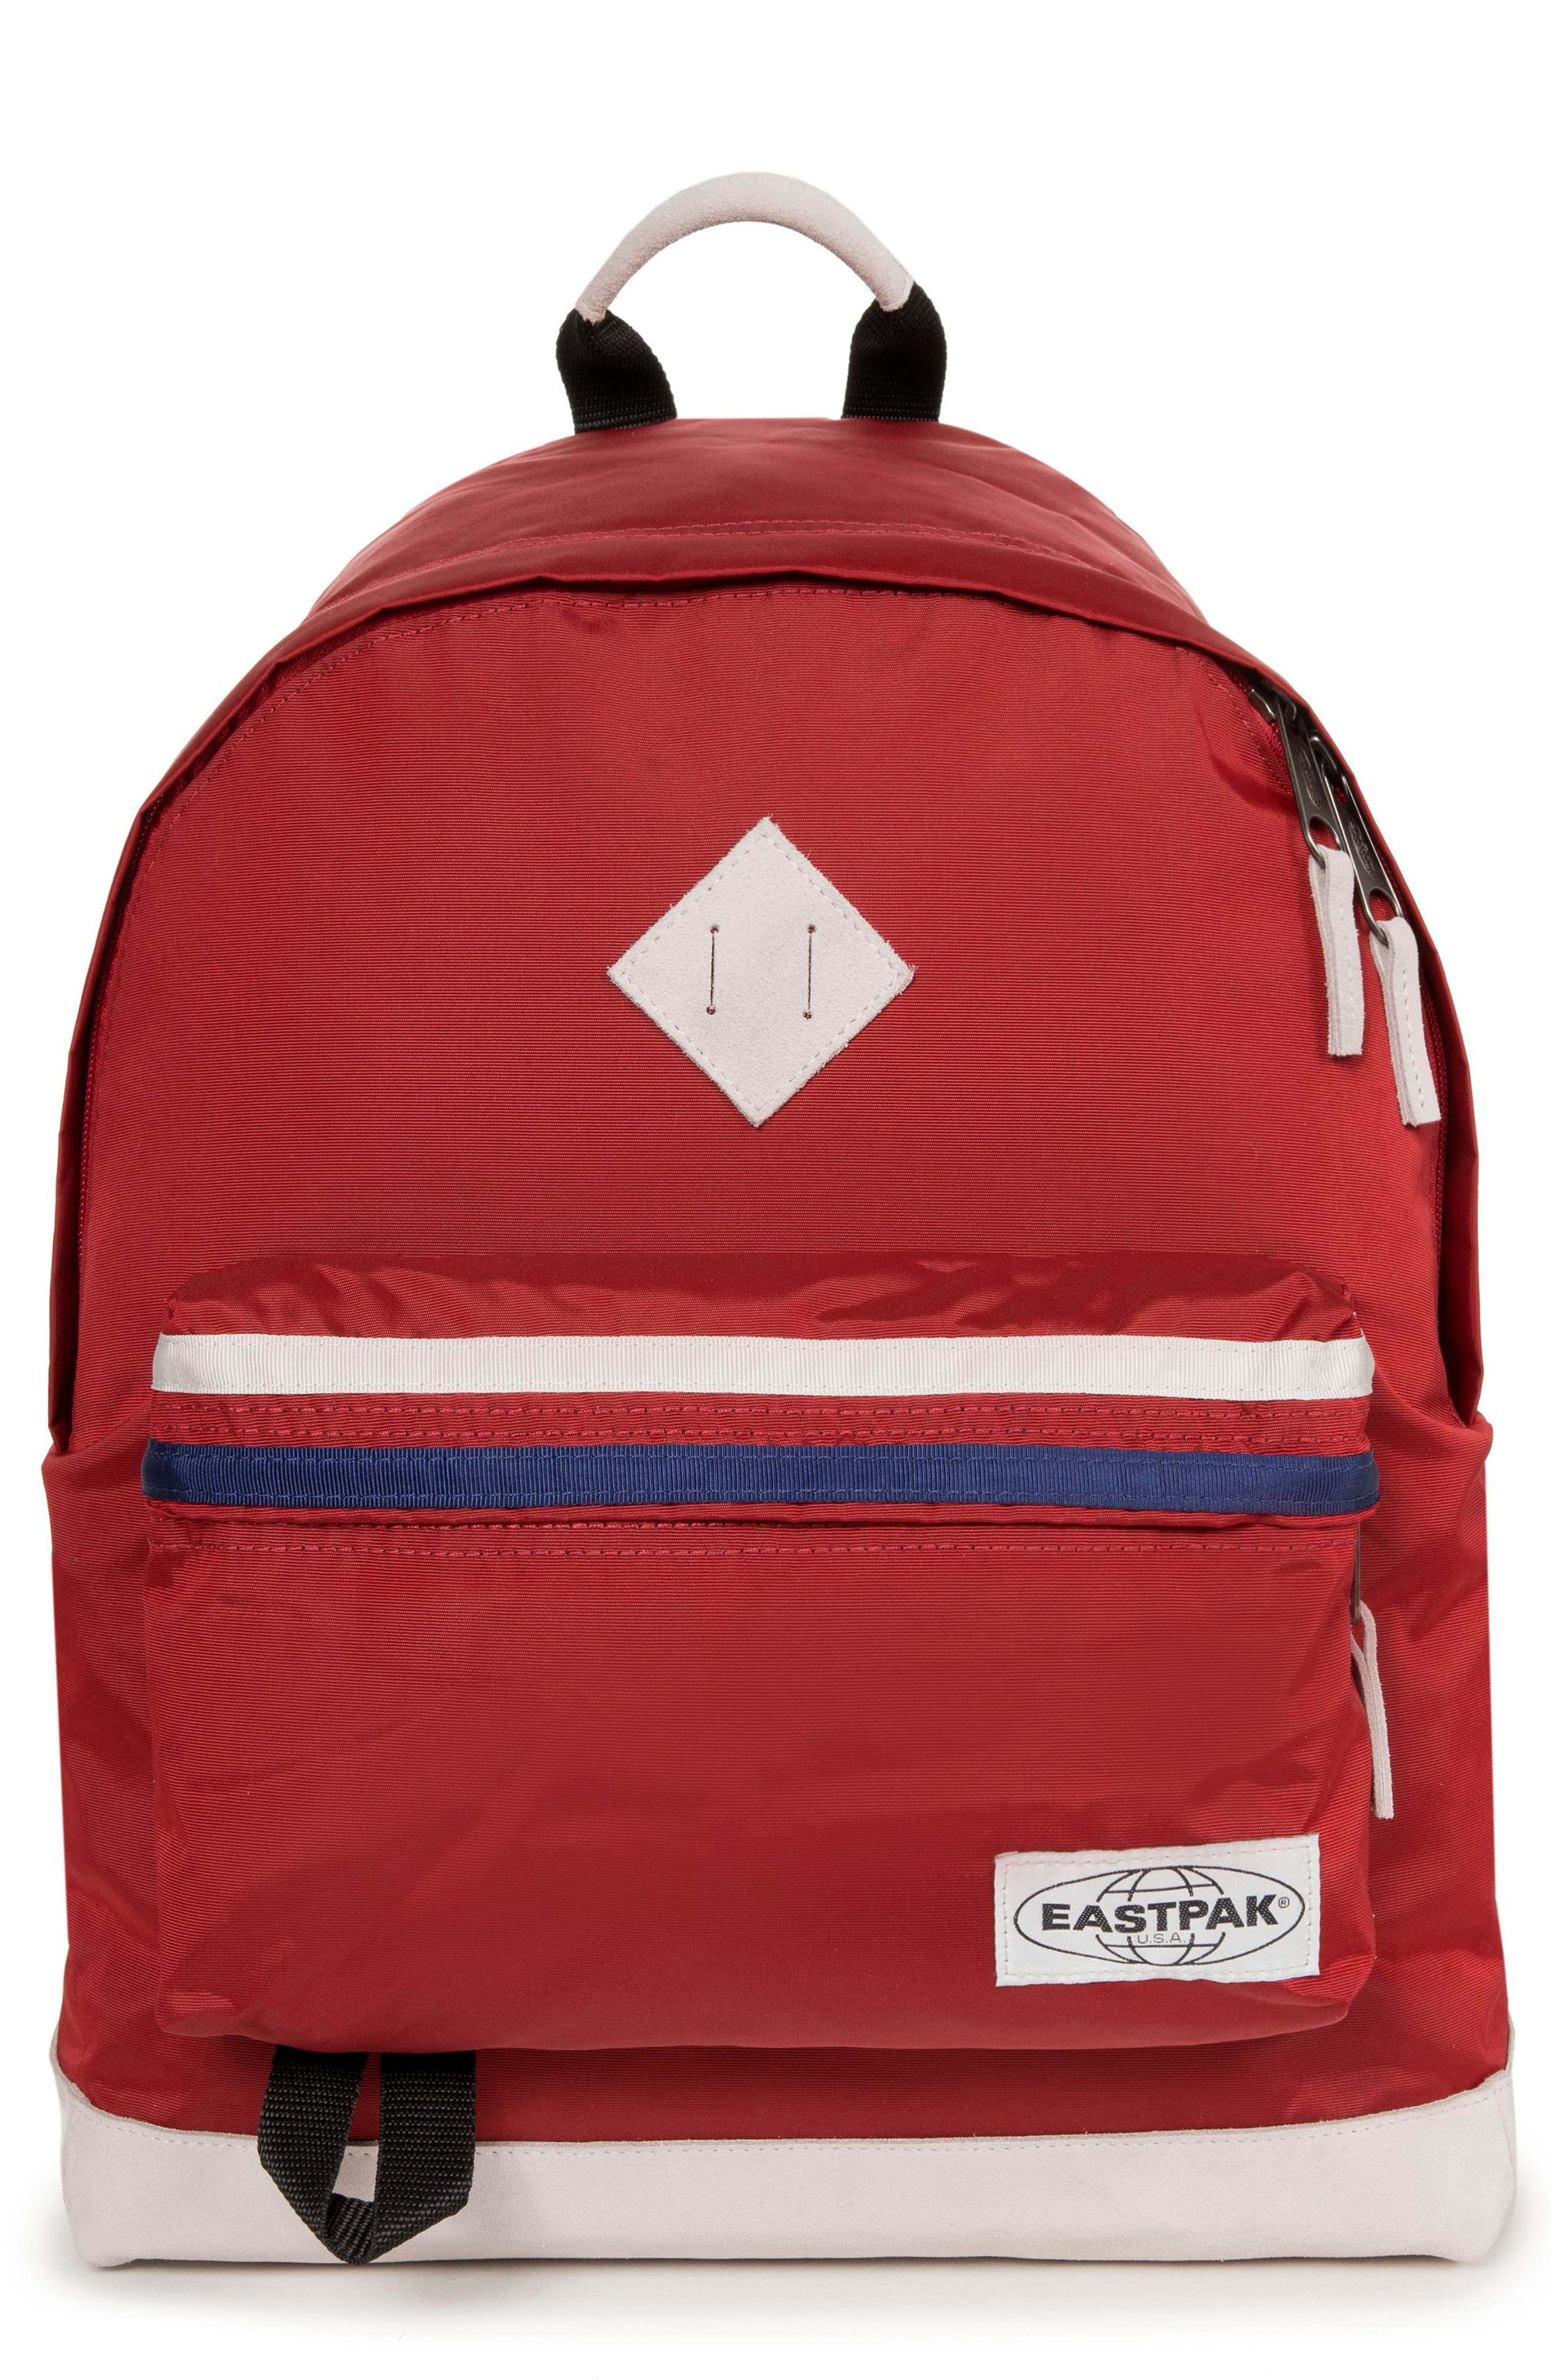 Eastpak Wyoming 13-Inch Laptop Backpack - Red